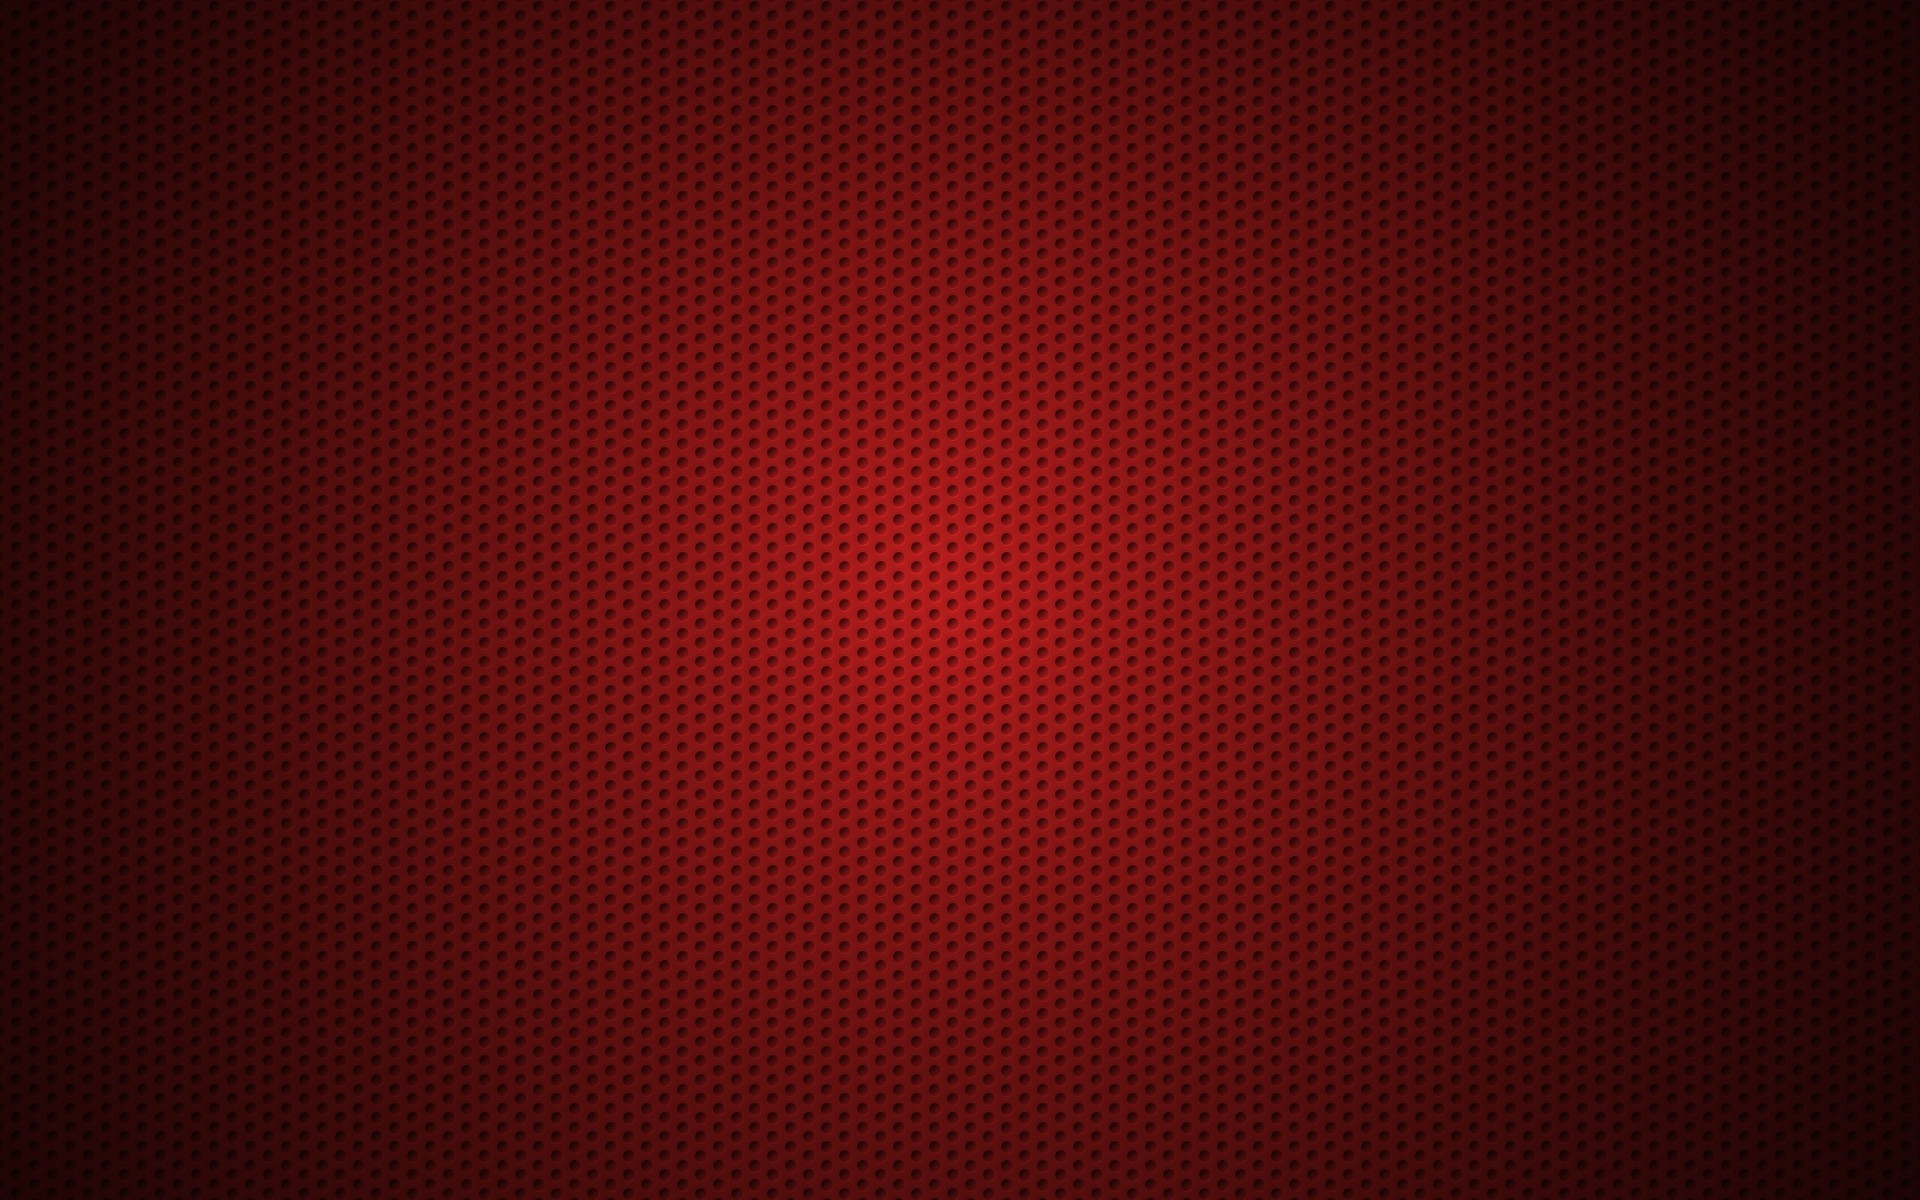 Red Textures Wallpaper Red, Textures